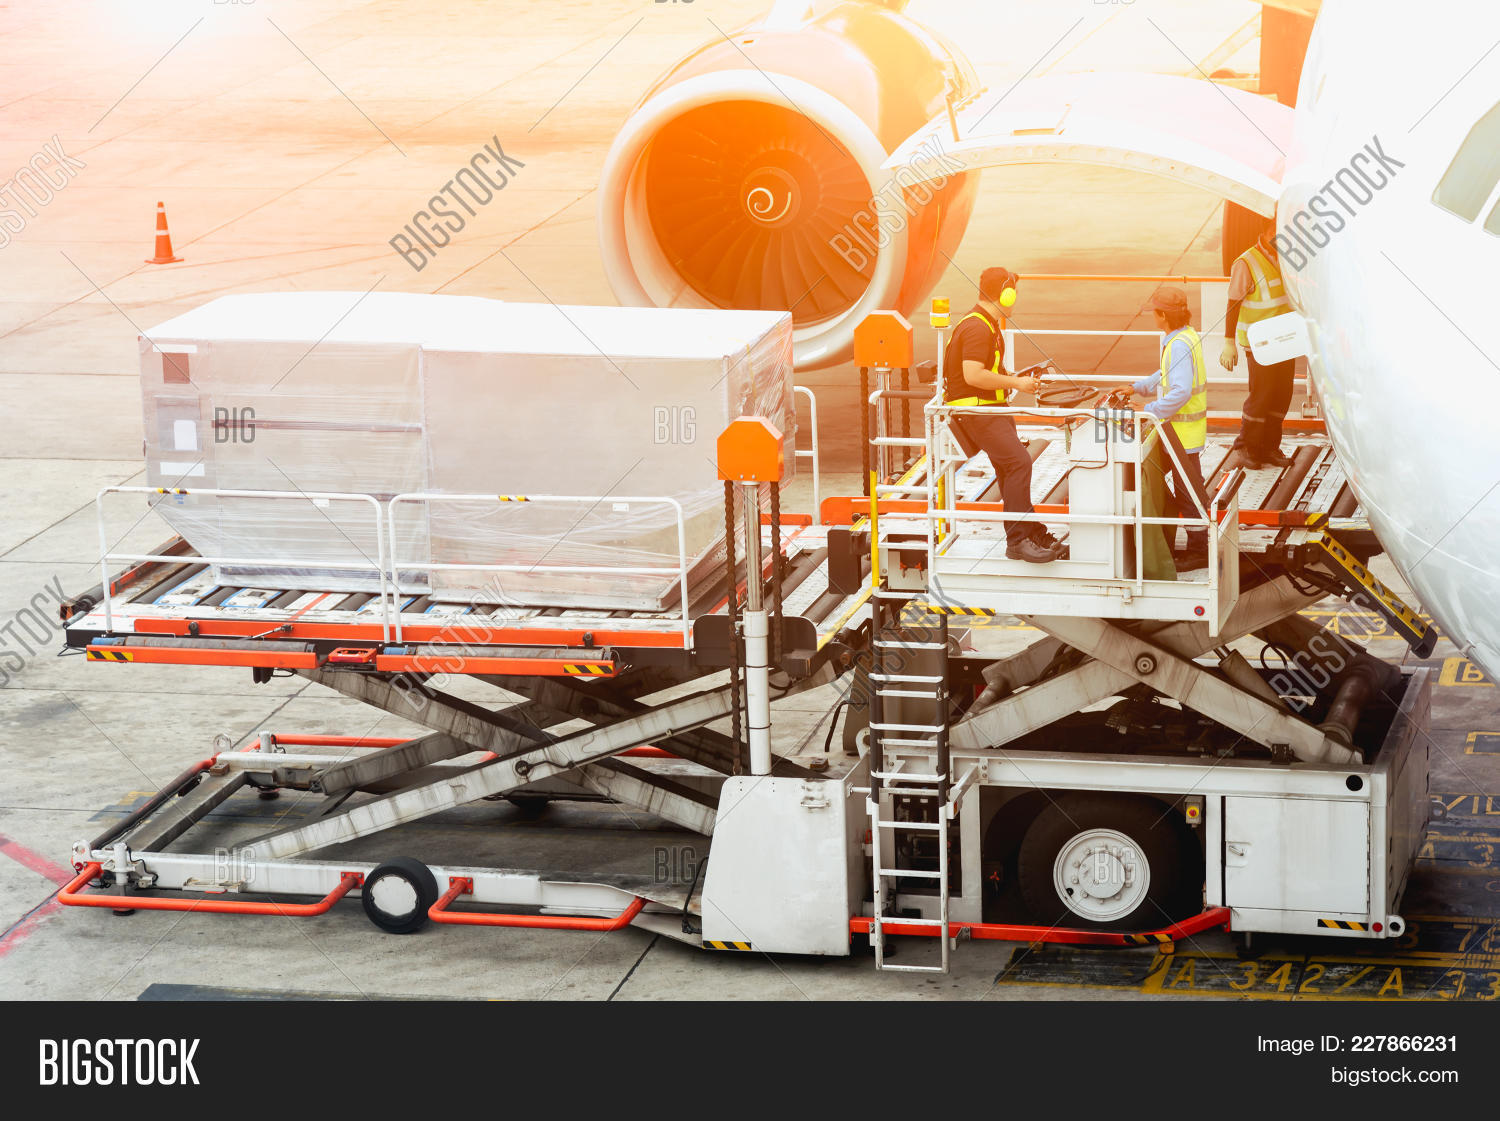 Air Freight Services Image Photo Free Trial Bigstock